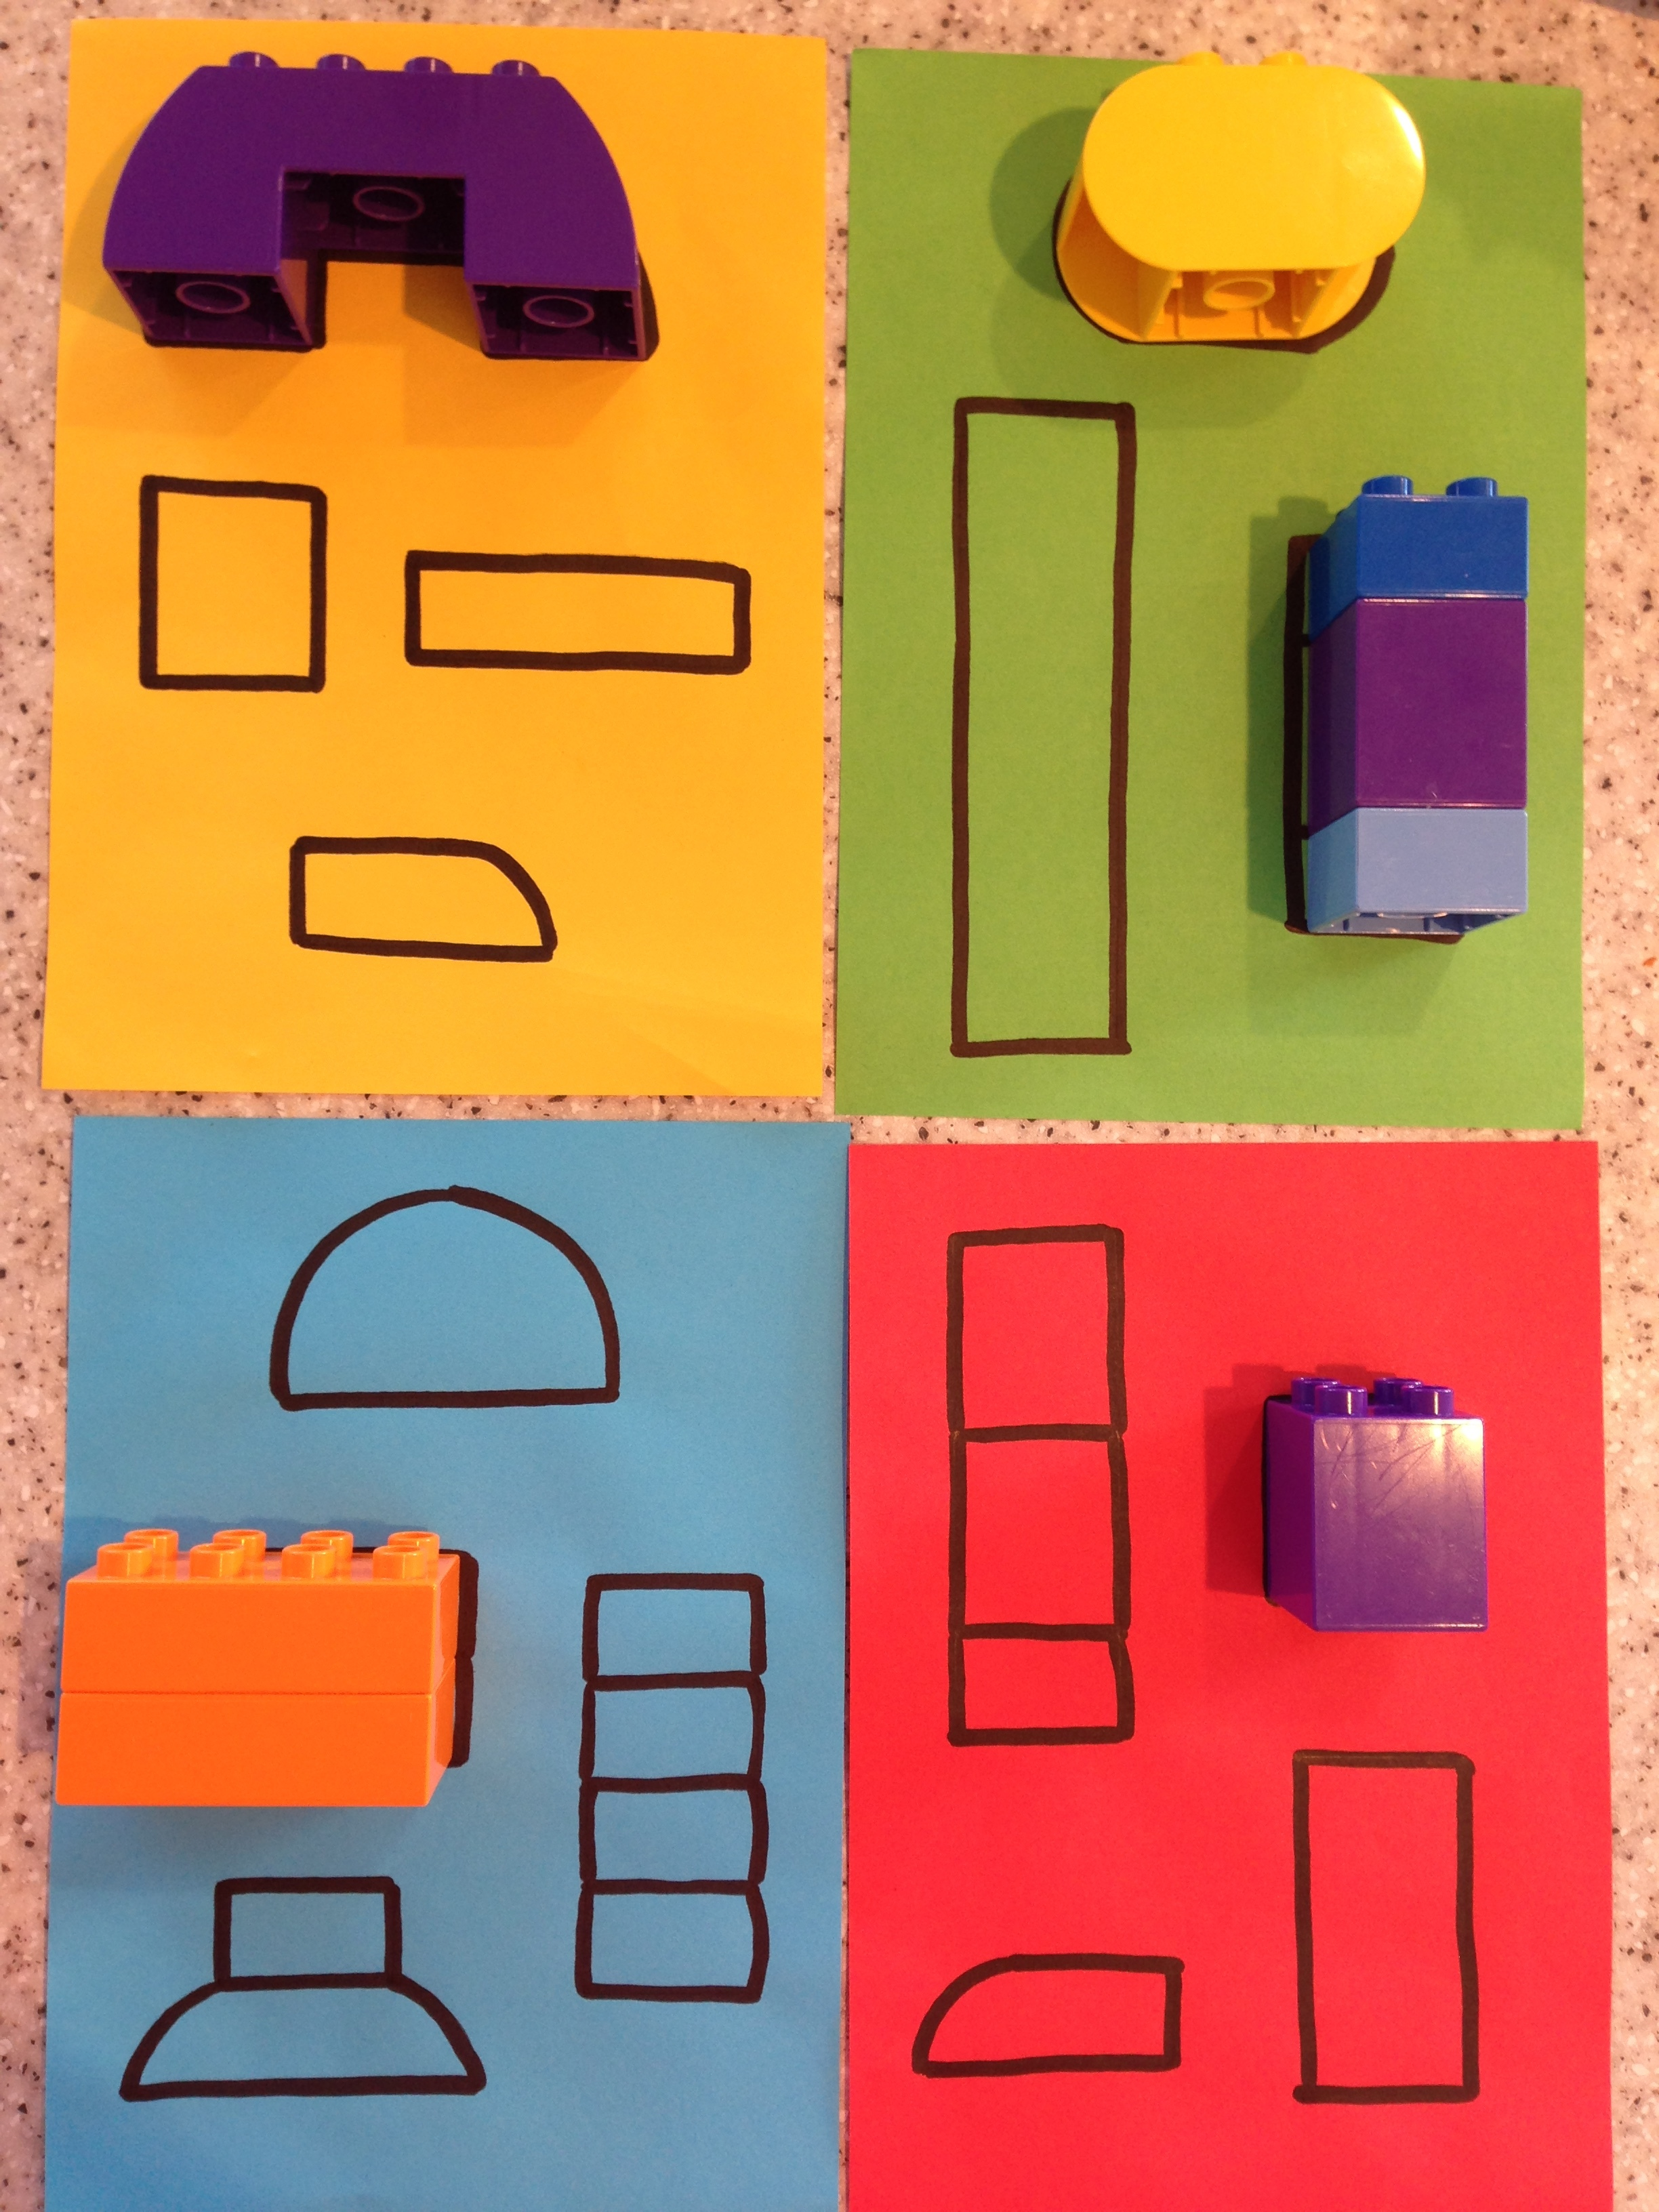 Lego shape puzzle - Instructions1. Put together pieces of lego into different shapes2. Trace around each shape on paper or card3. Your little one pairs up the pieces of lego with the shapes drawn on the paper